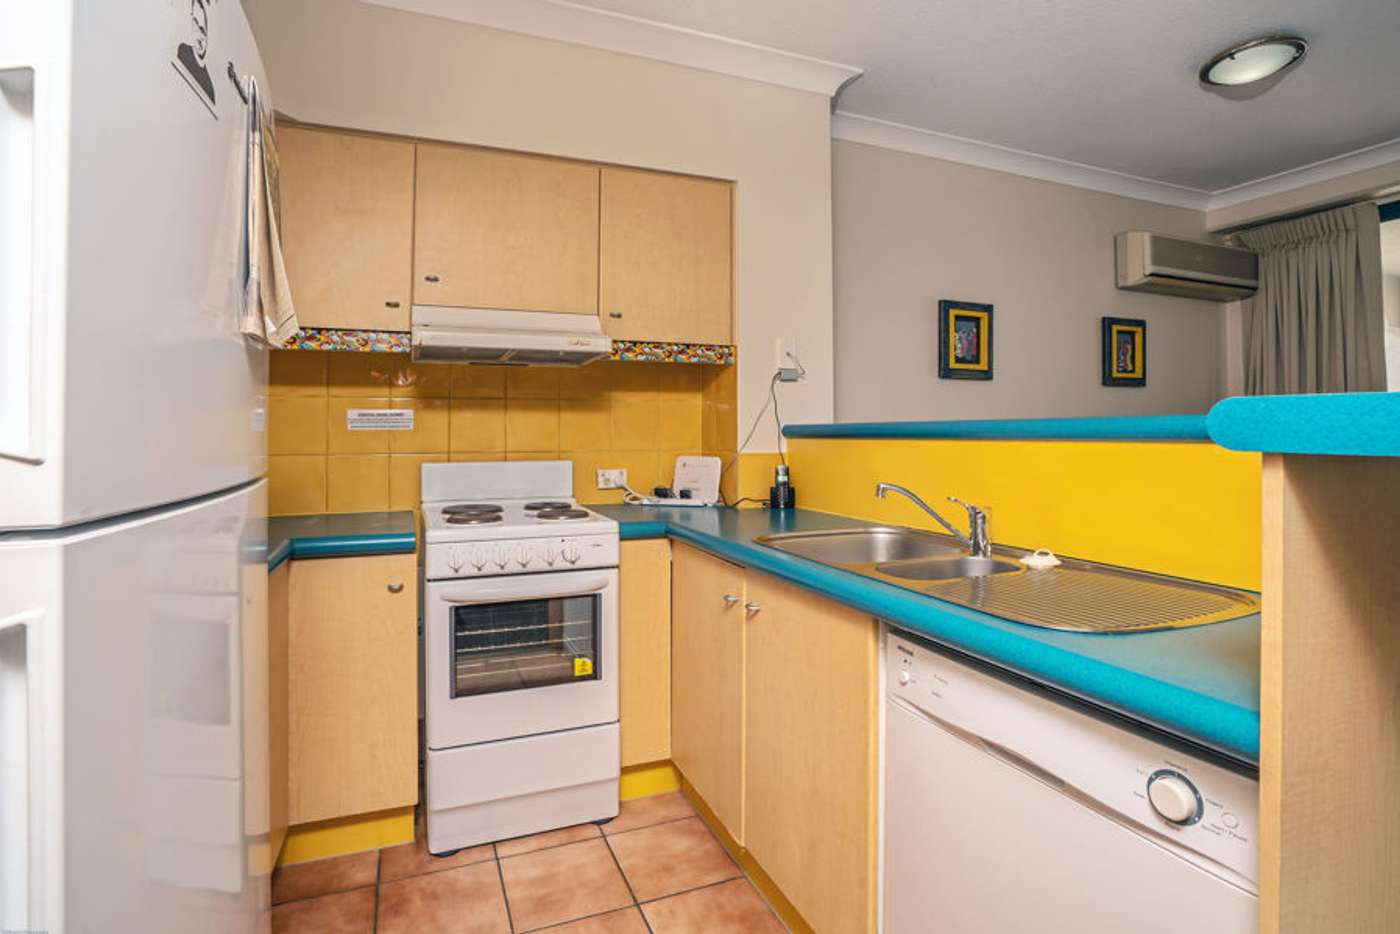 Sixth view of Homely unit listing, 41/ 112 Surf Parade, Broadbeach QLD 4218